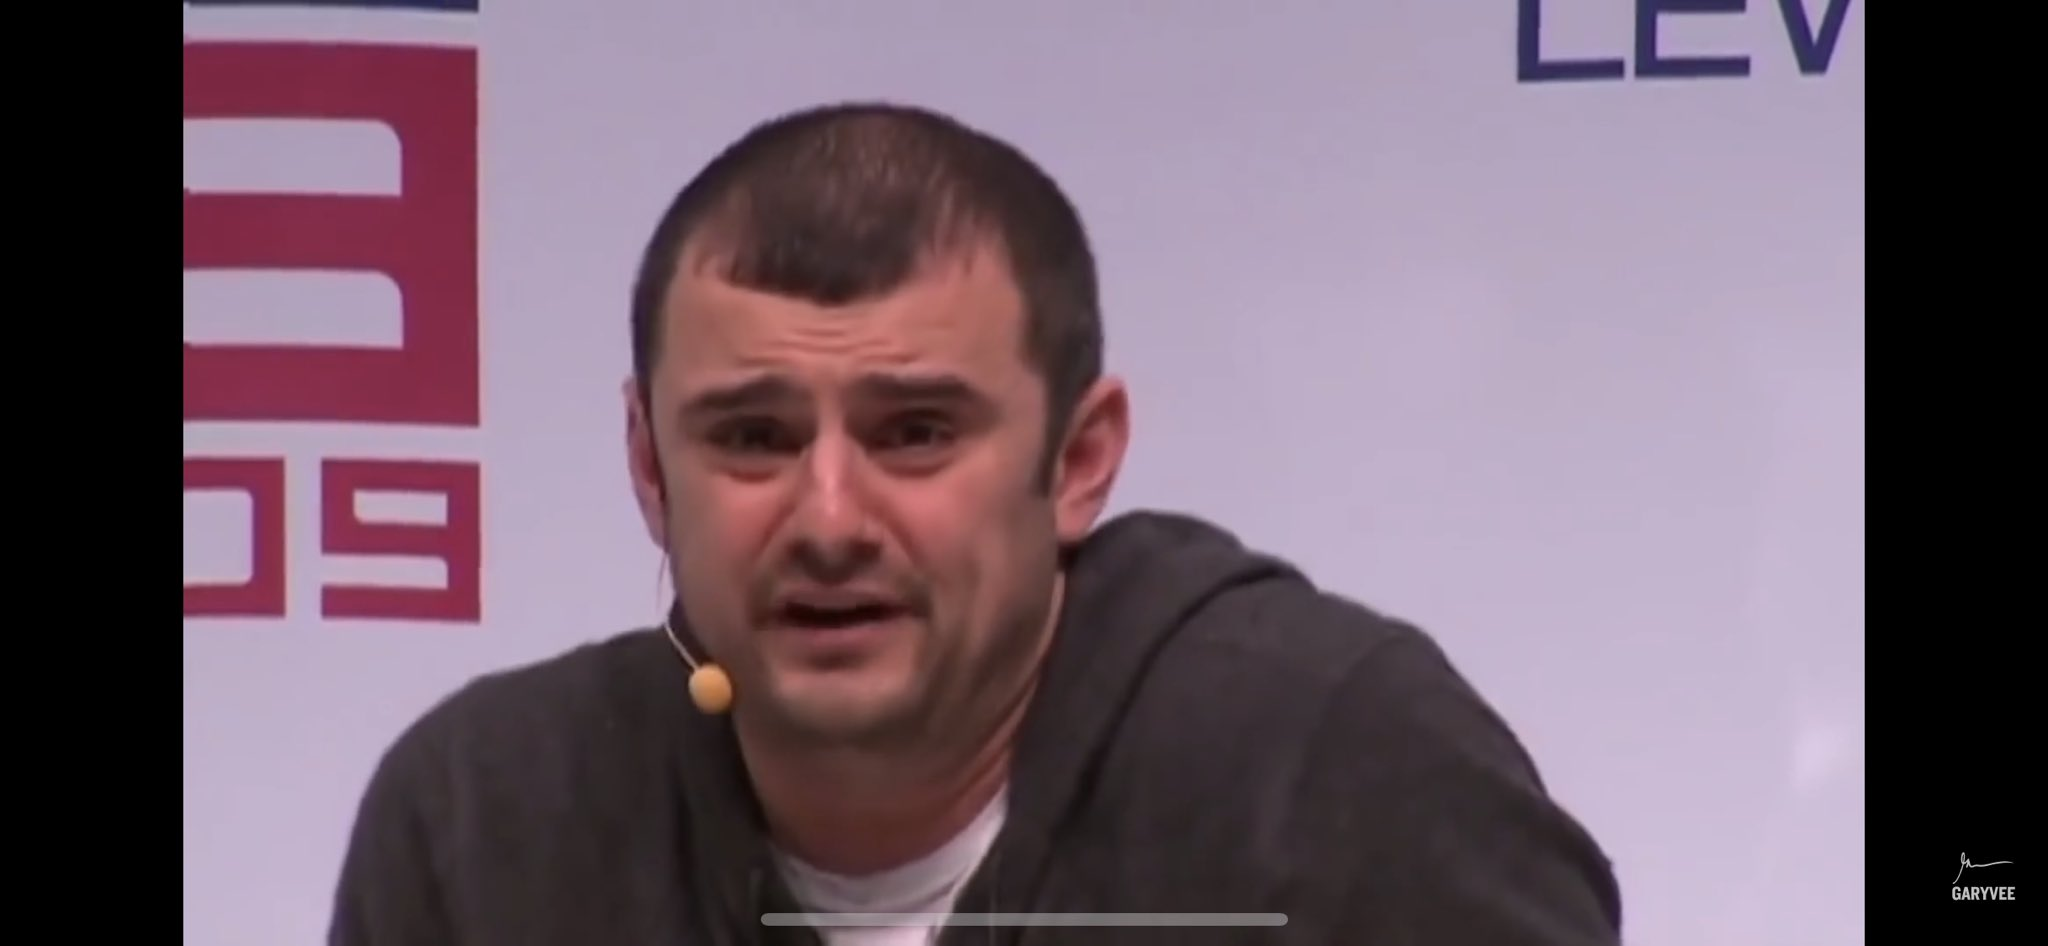 Gary Vaynerchuk on Twitter